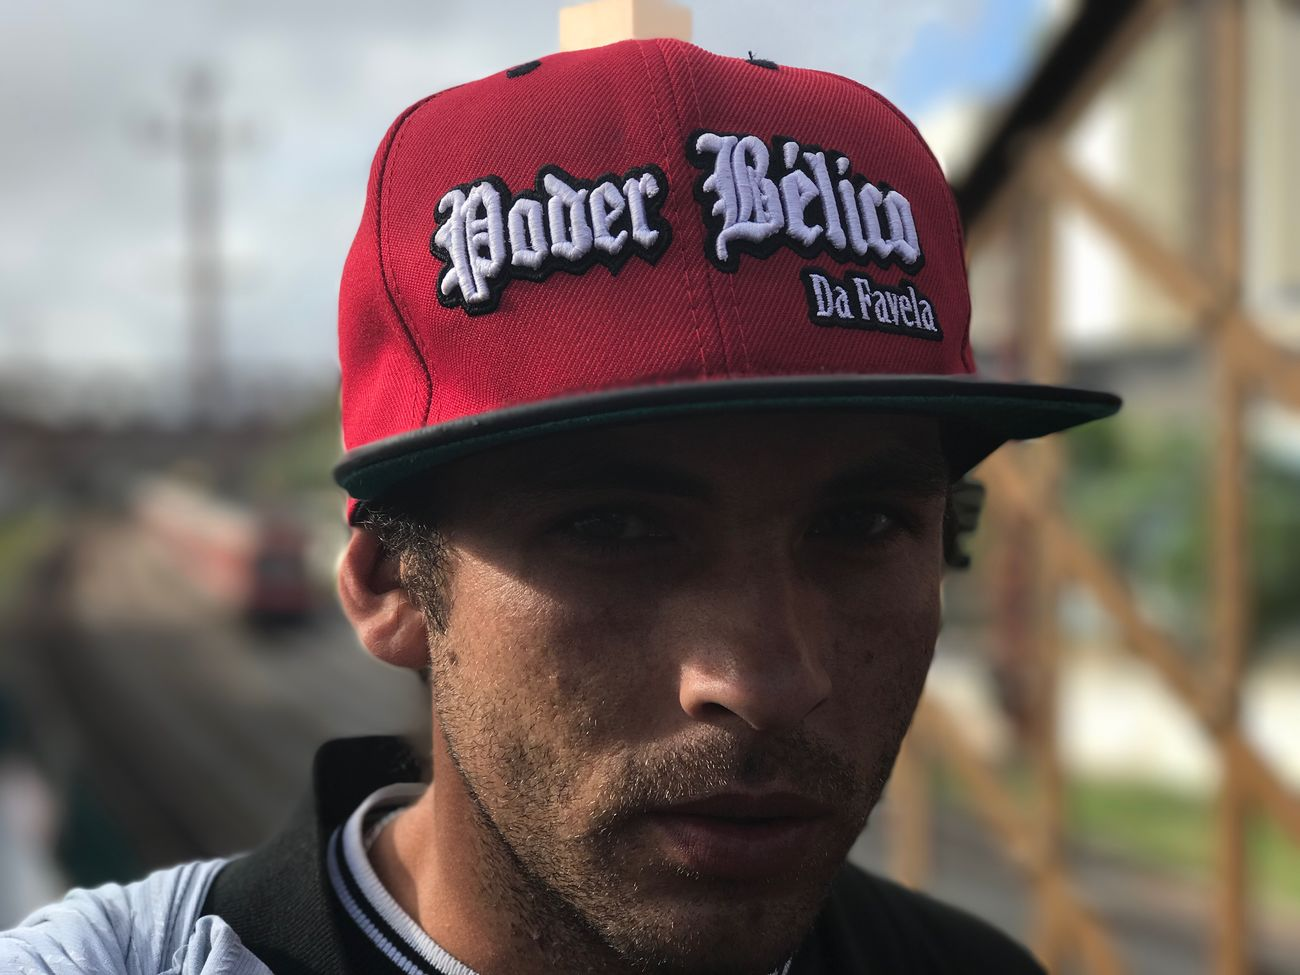 """""""Poder Bélico da Favela"""". April, 2017. Shootermag Portrait Shotoniphone7plus Focus On Foreground One Person Text Real People Young Adult Cap Young Men Day Outdoors Close-up"""